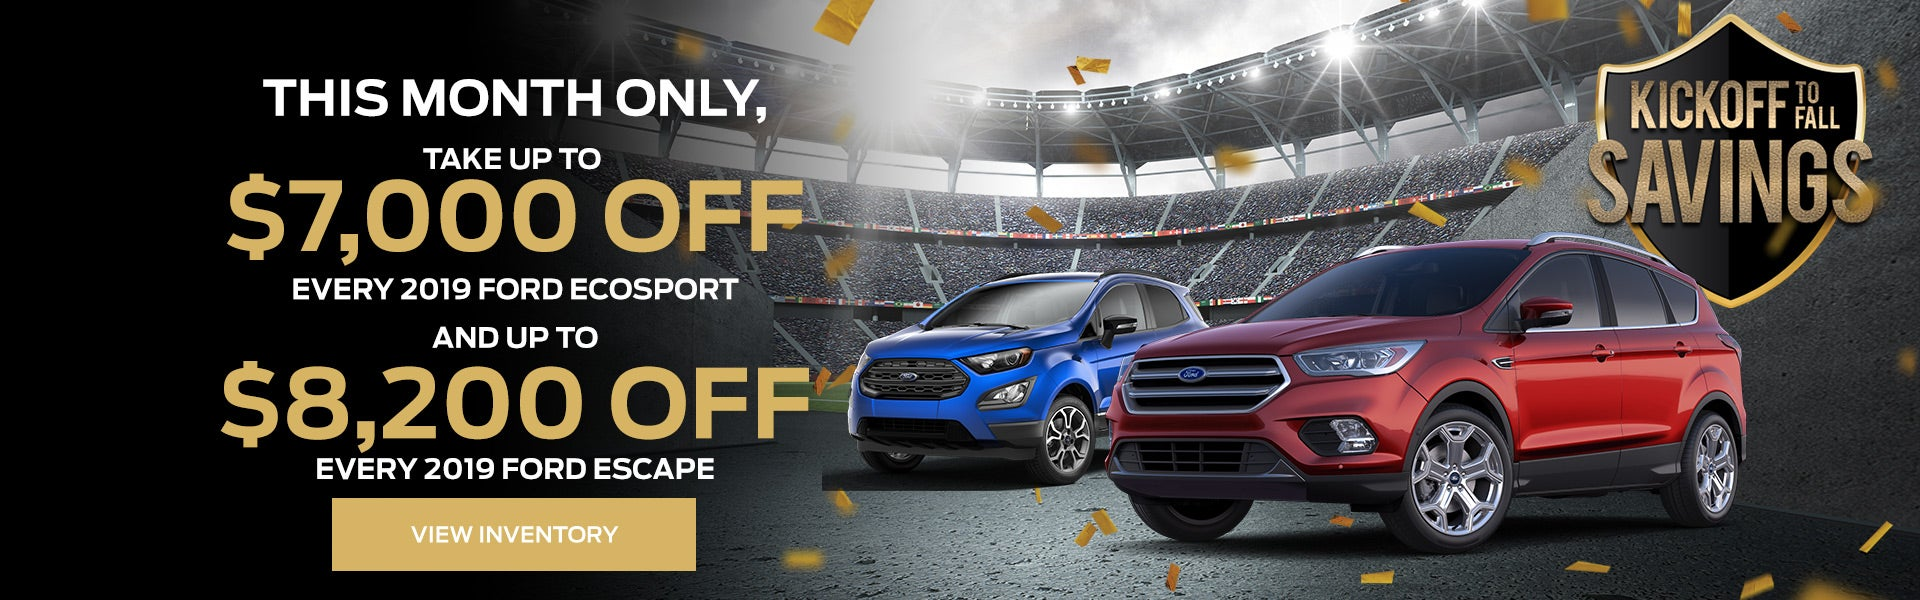 Ford Lease Deals Ct >> All American Ford Of Paramus Ford Dealership In Paramus Nj